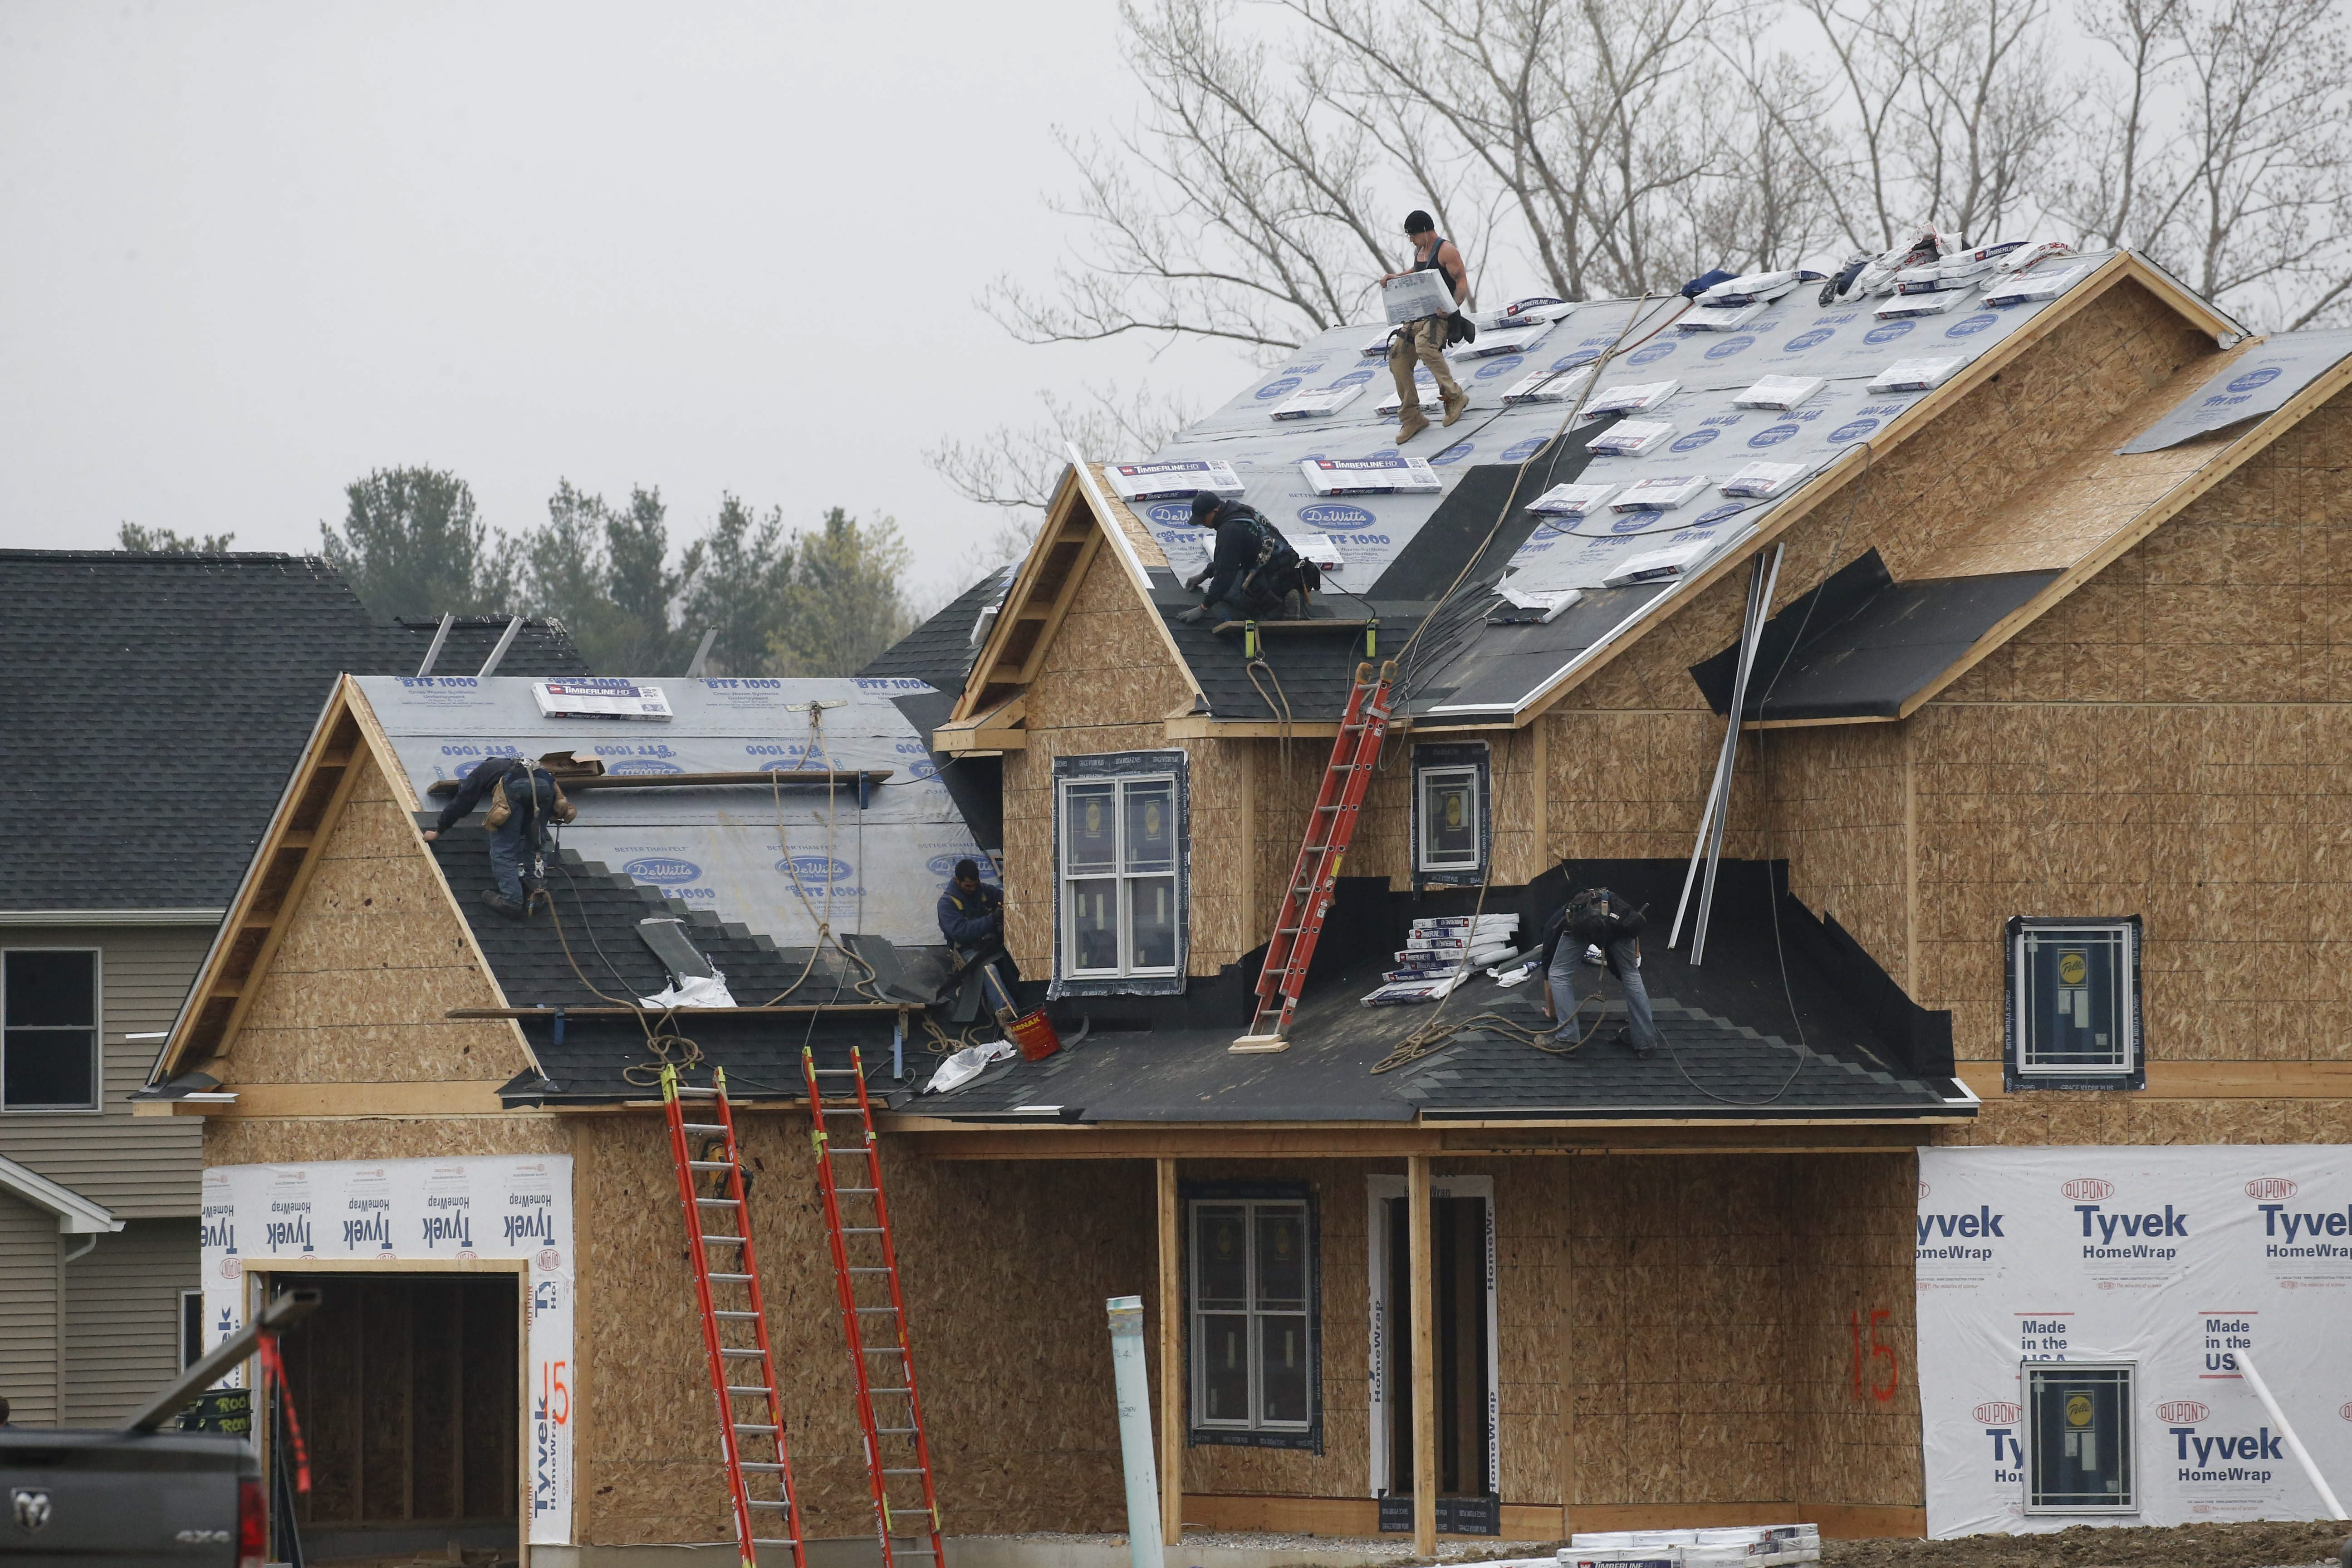 Roofers work on a new build in a new subdivision on Golden Oak Lane in Orchard Park, Thursday, May 5, 2016.  (Derek Gee/Buffalo News)